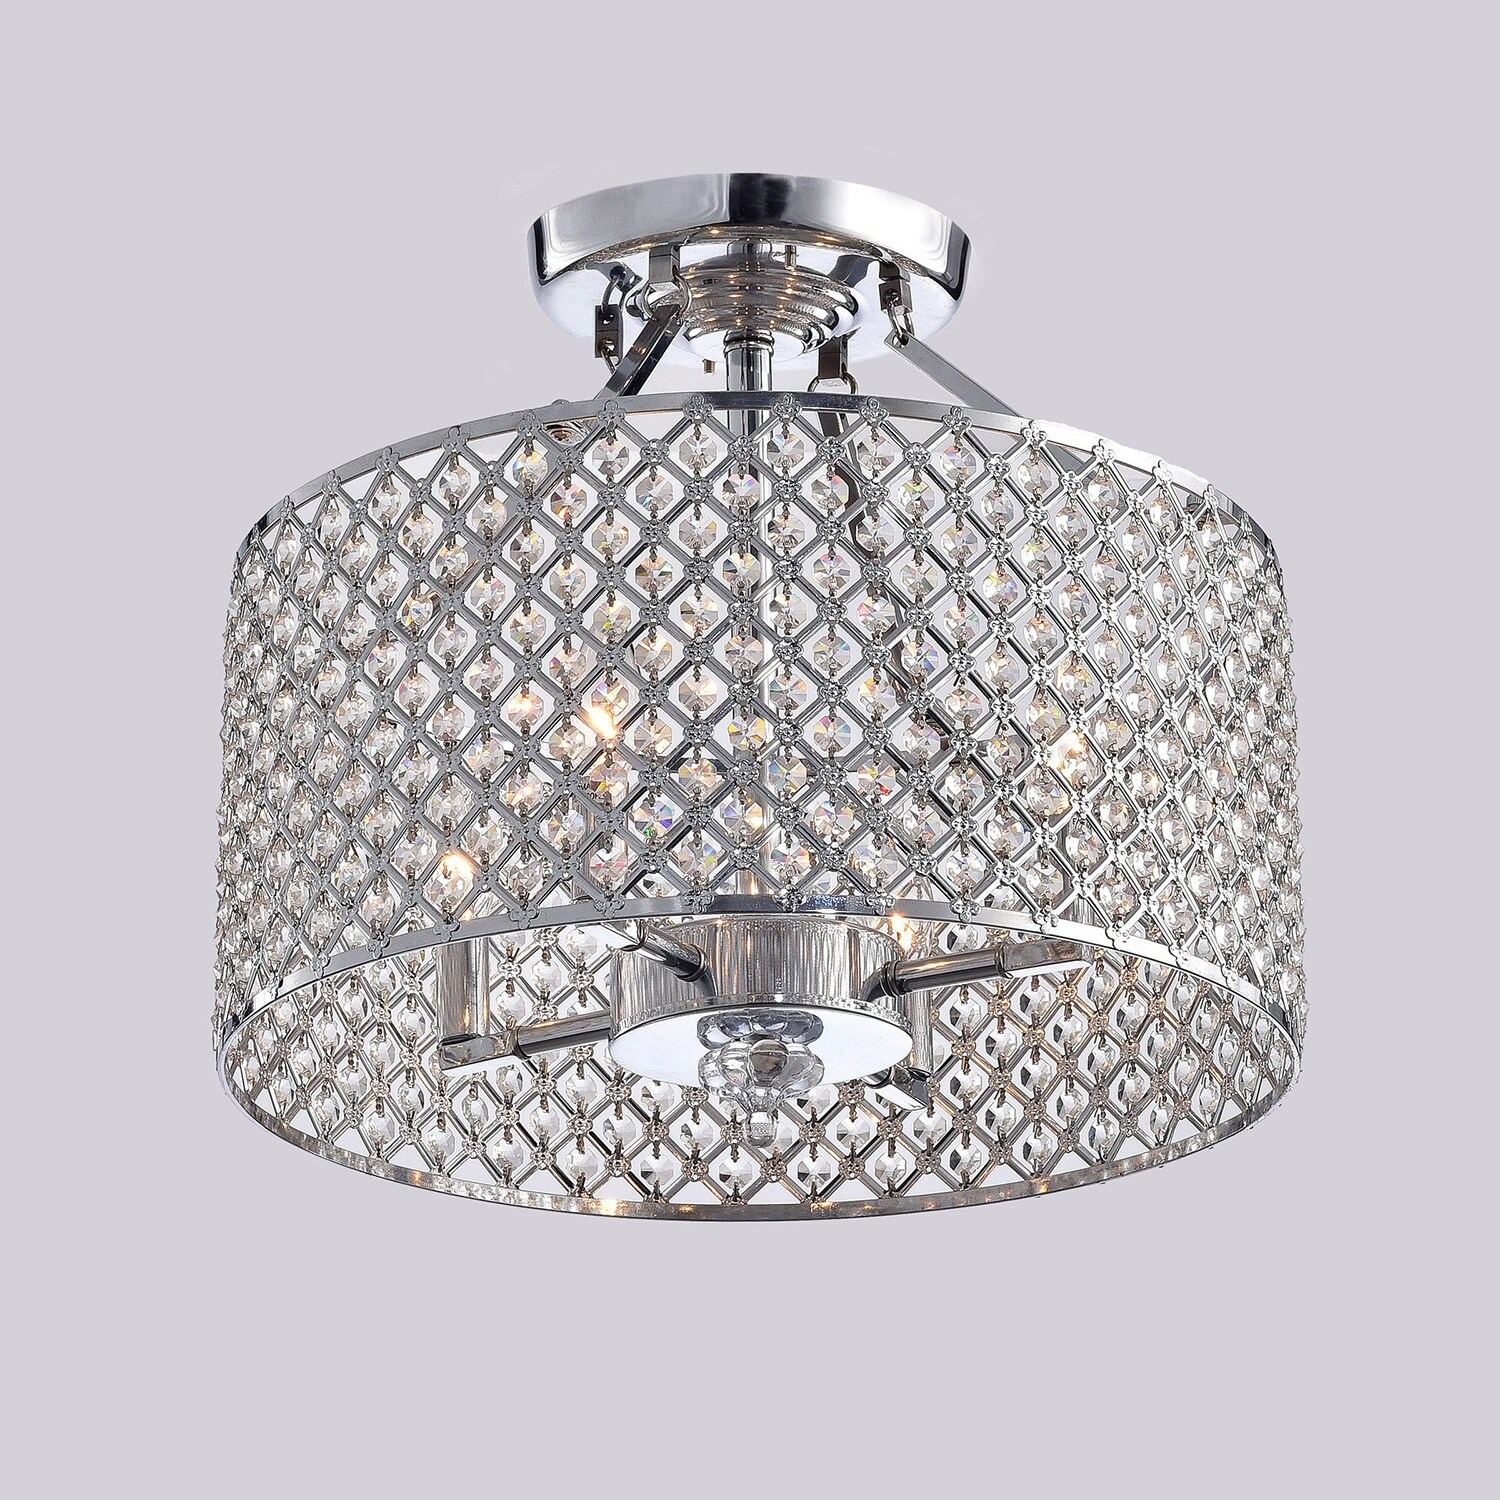 Chrome Crystal 4 Light Round Ceiling Chandelier Free Shipping Today 20253756